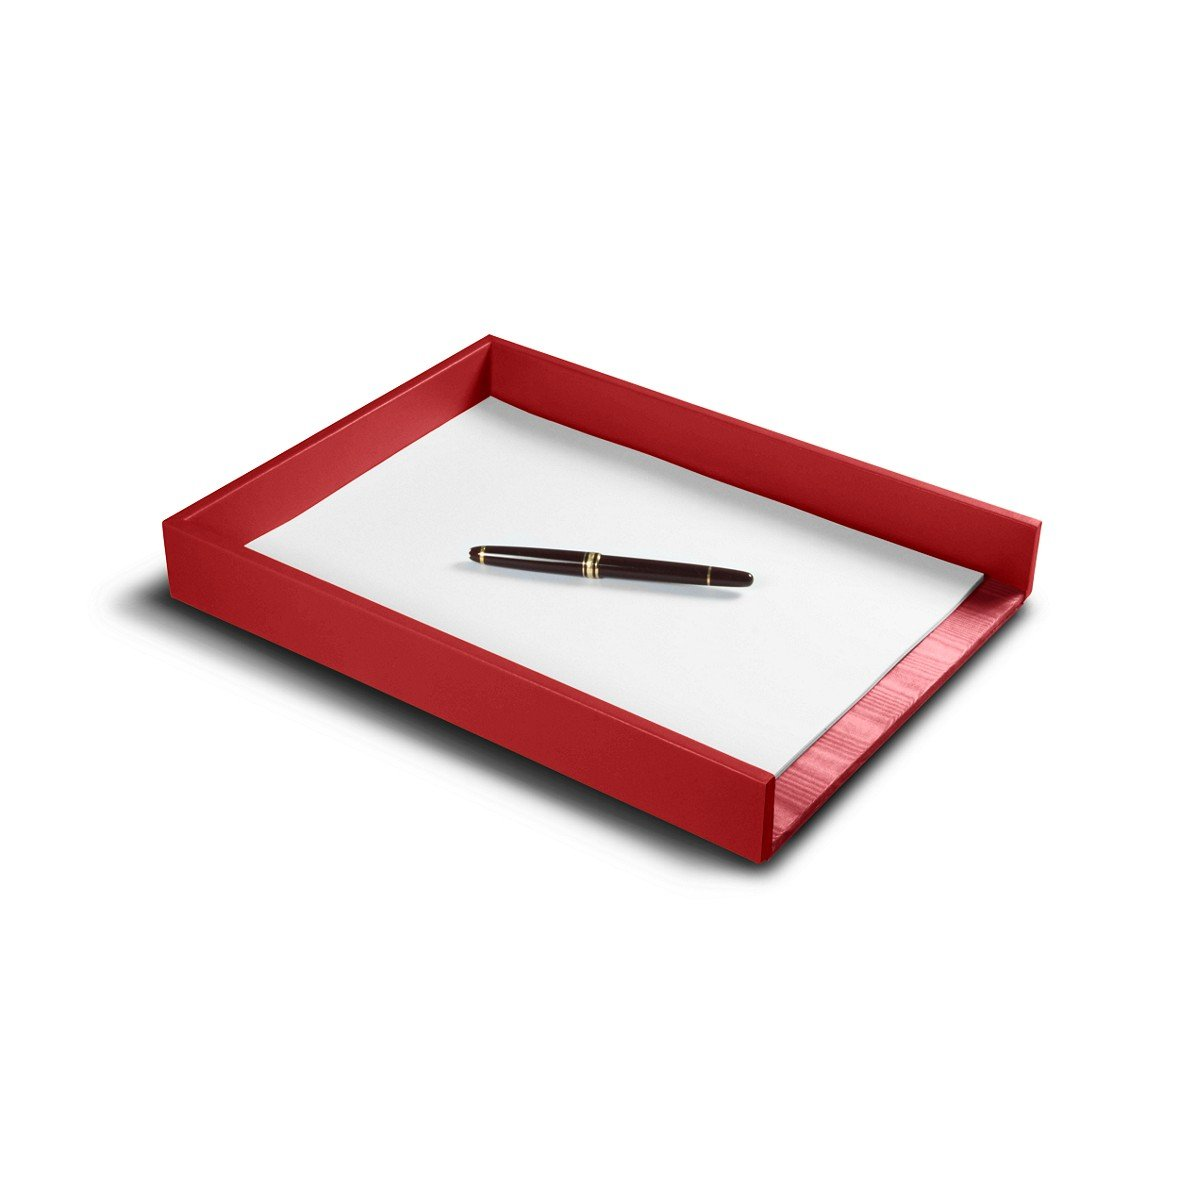 Lucrin - A4 Letter Tray - Red - Smooth Leather